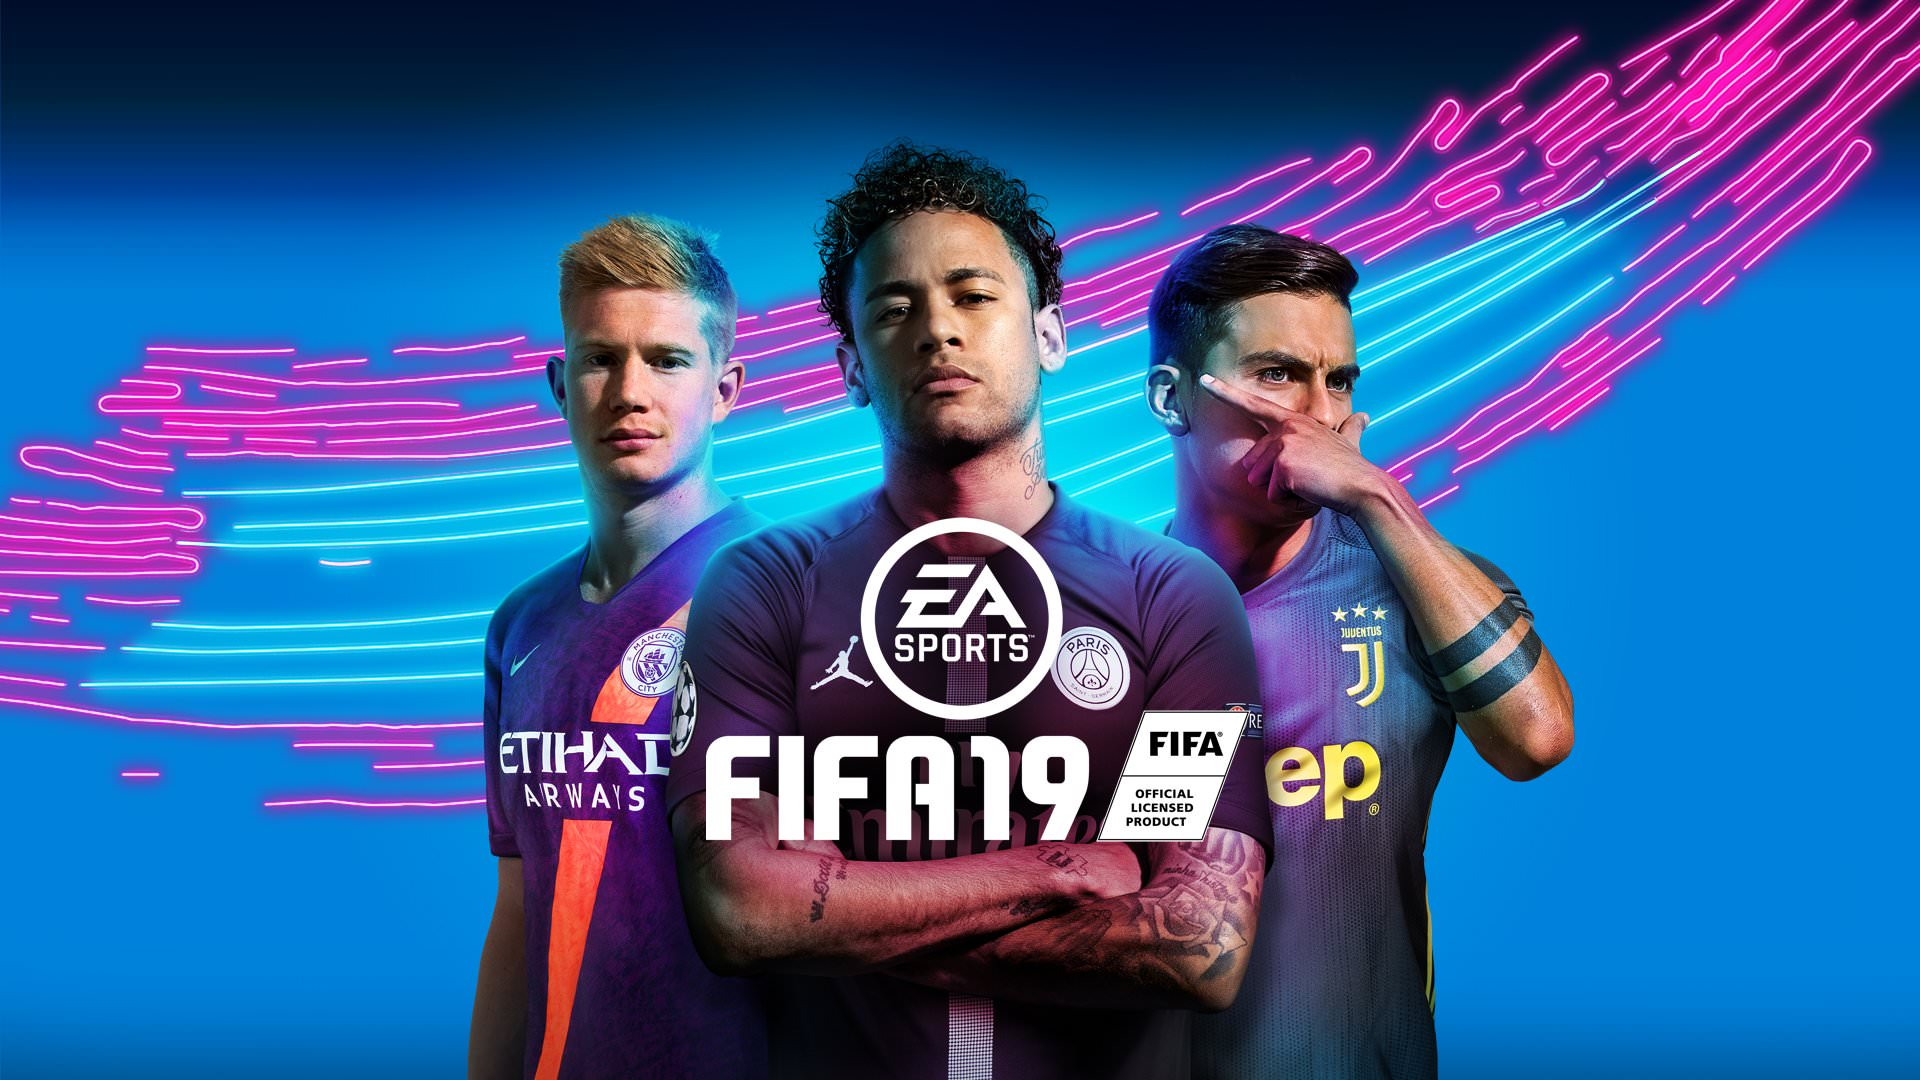 FIFA 19 Content Update – New UEFA Champions League Content and Neymar as the Cover Star